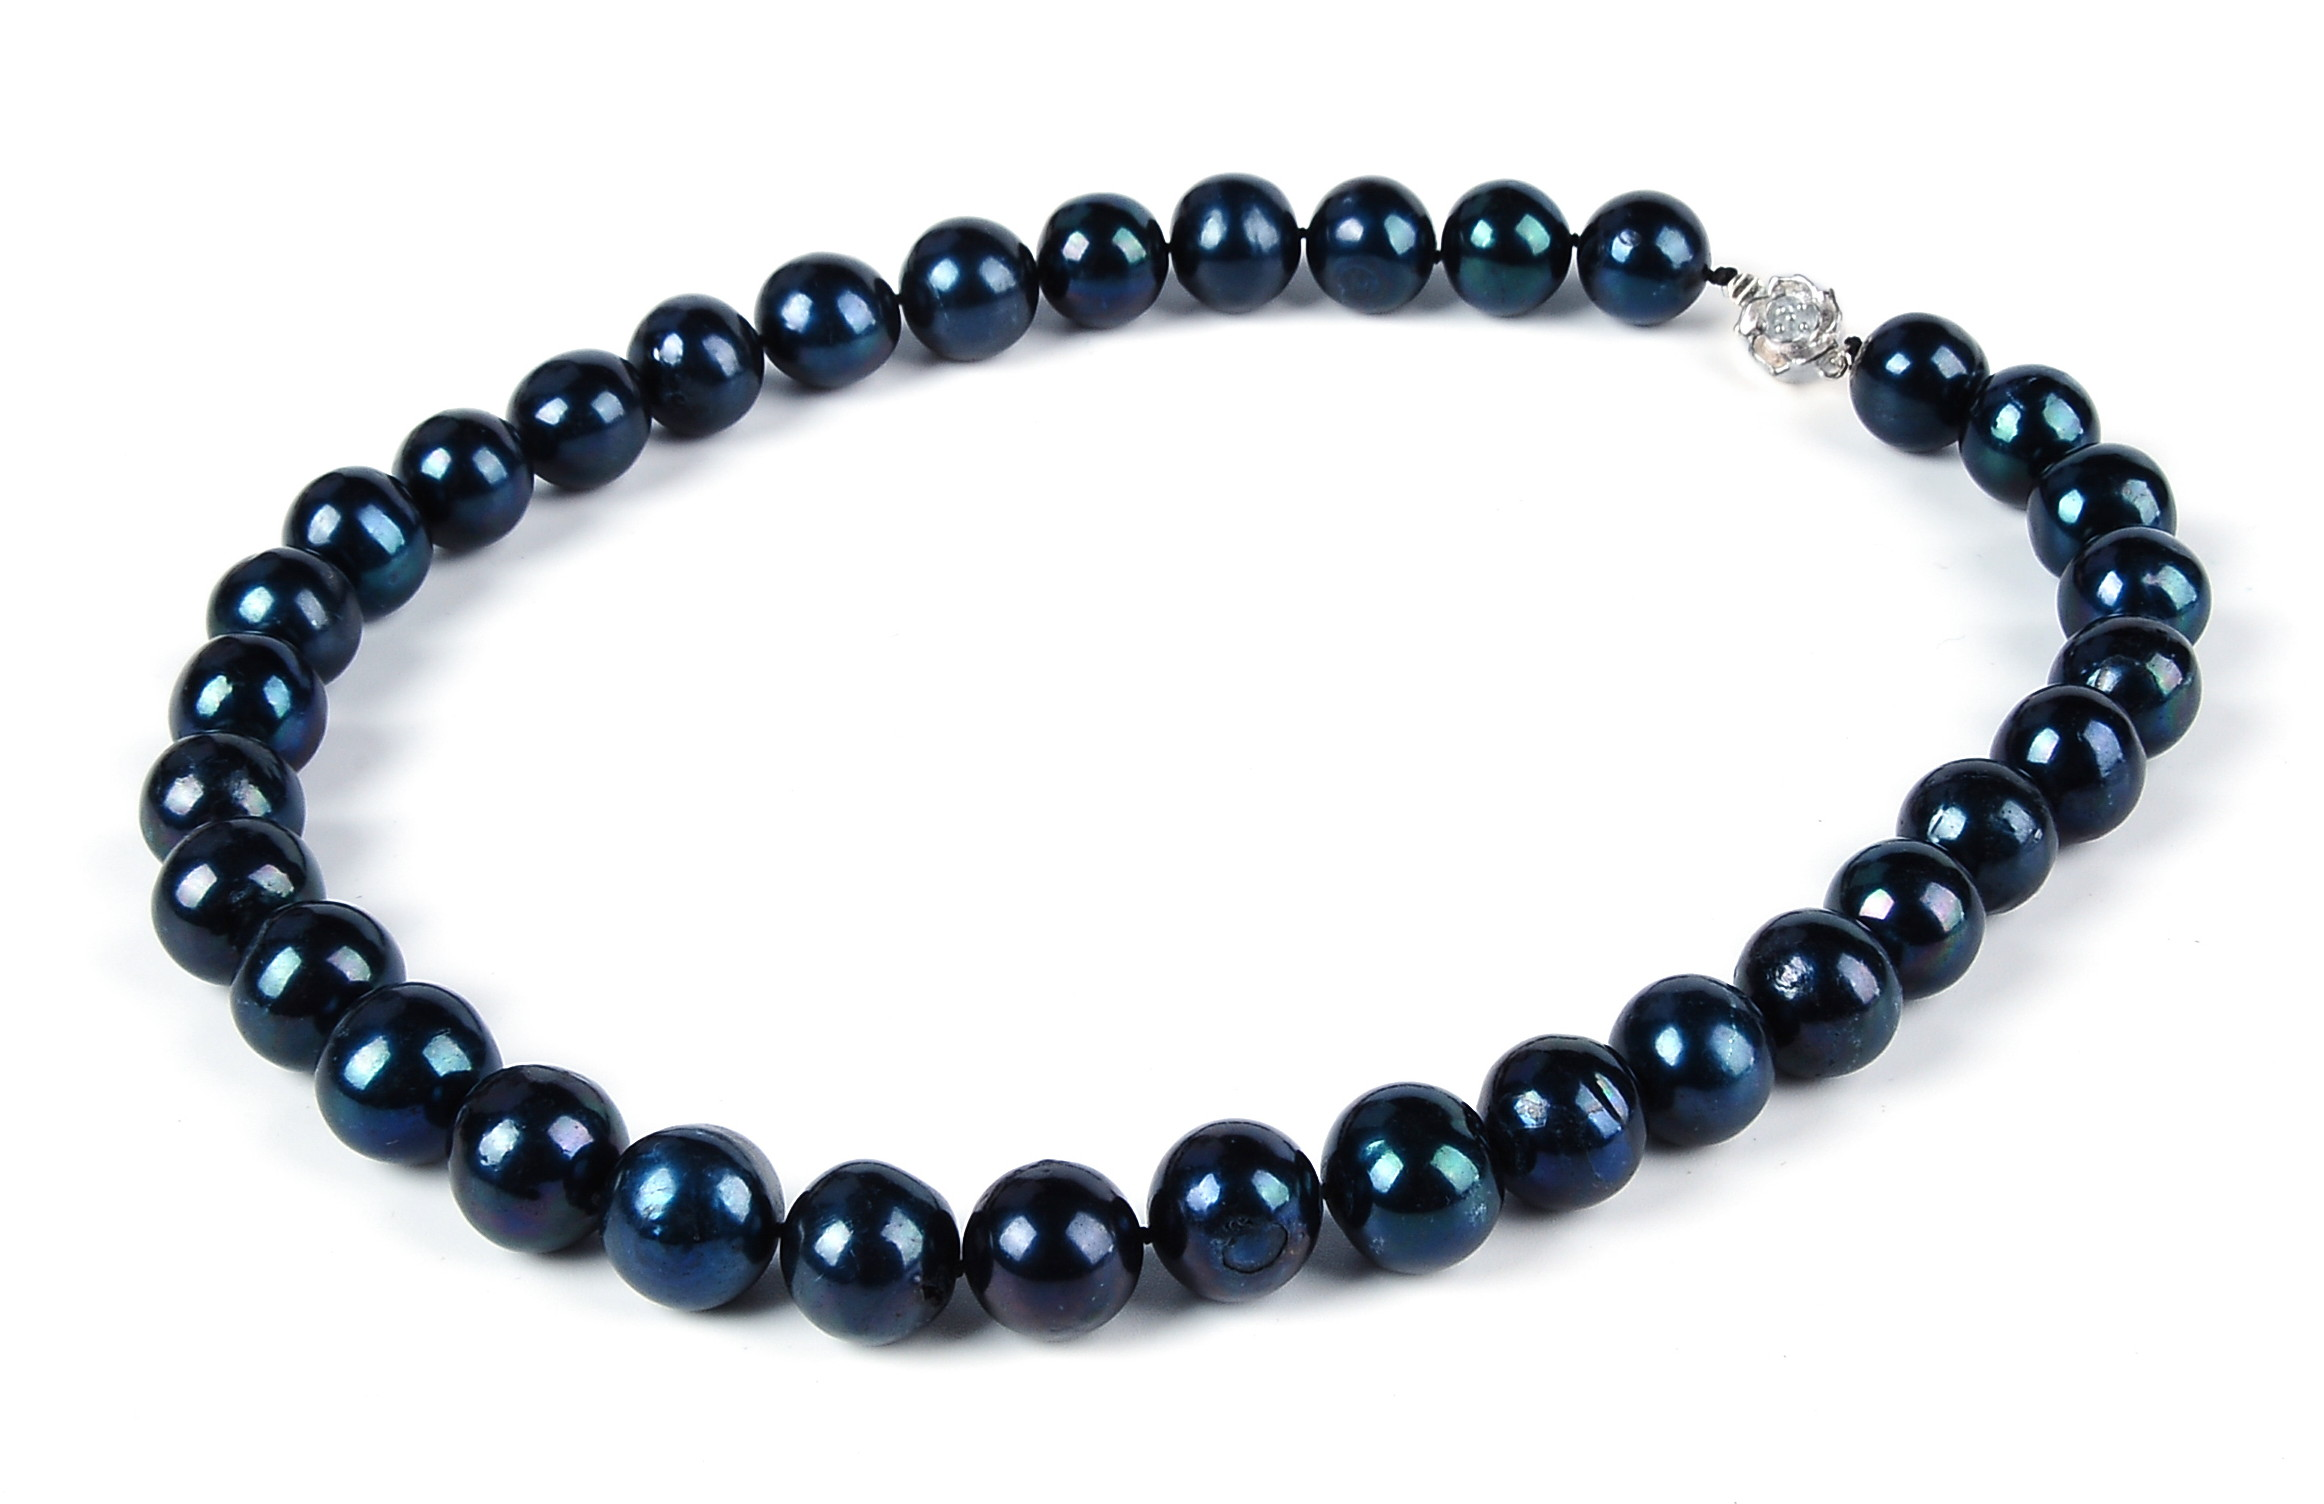 Huge 14mm AA Lustrous Pure Black Freshwater Pearl Necklace -nk262